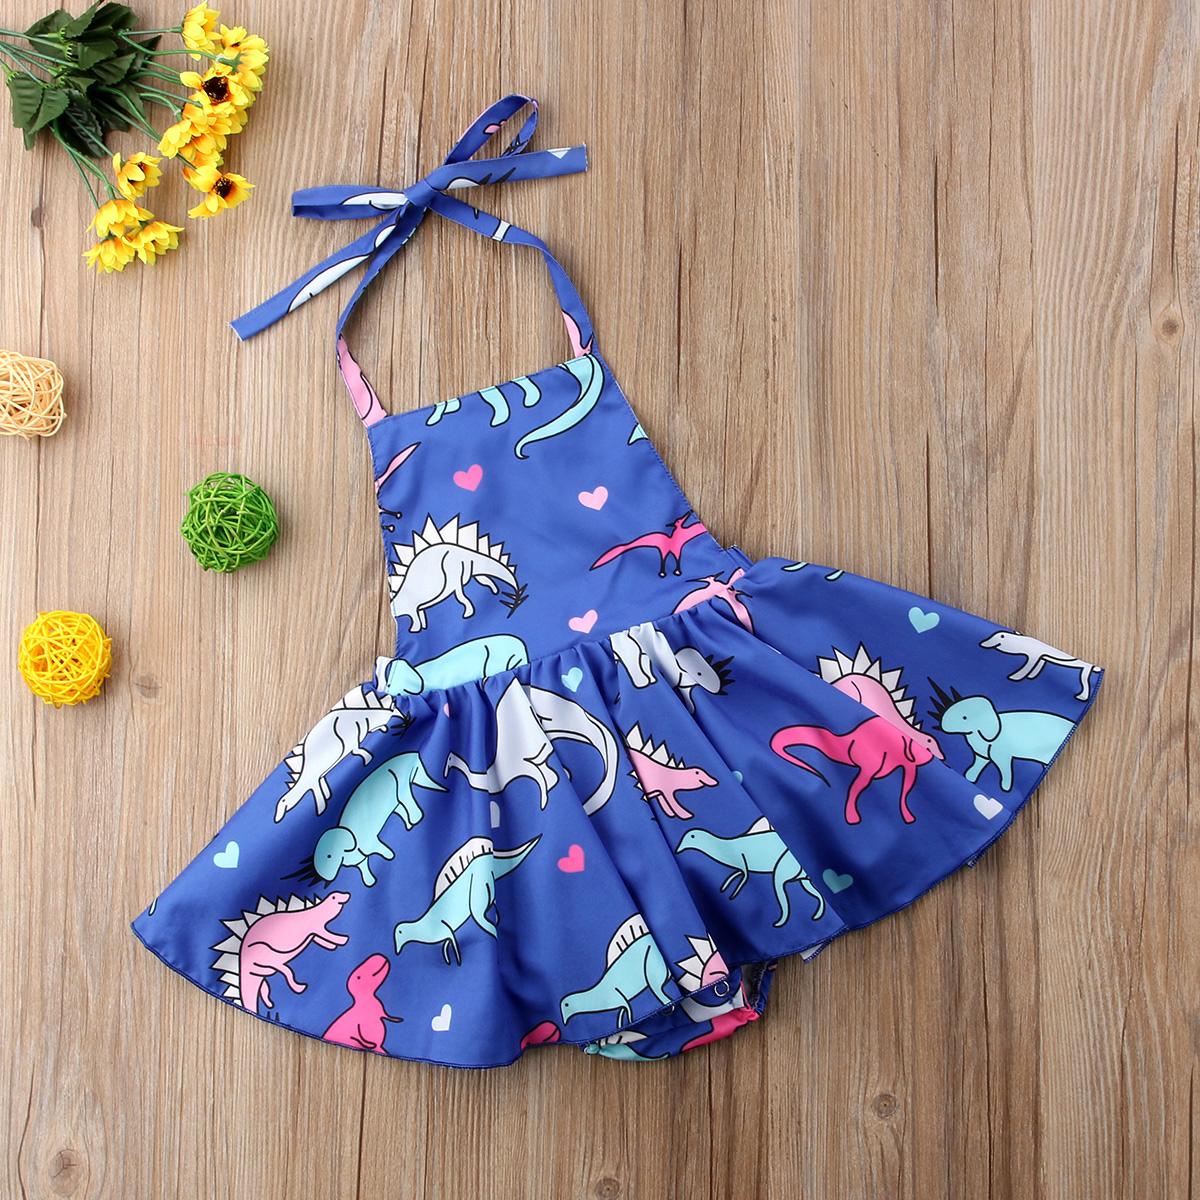 a9d65976994f 2018 Brand New Toddler Infant Kids Baby Girl Dinosaur Fly Sleeve Romper  Dress Jumpsuit Outfits Summer Strap Mini Sundress 1 4T-in Dresses from  Mother   Kids ...